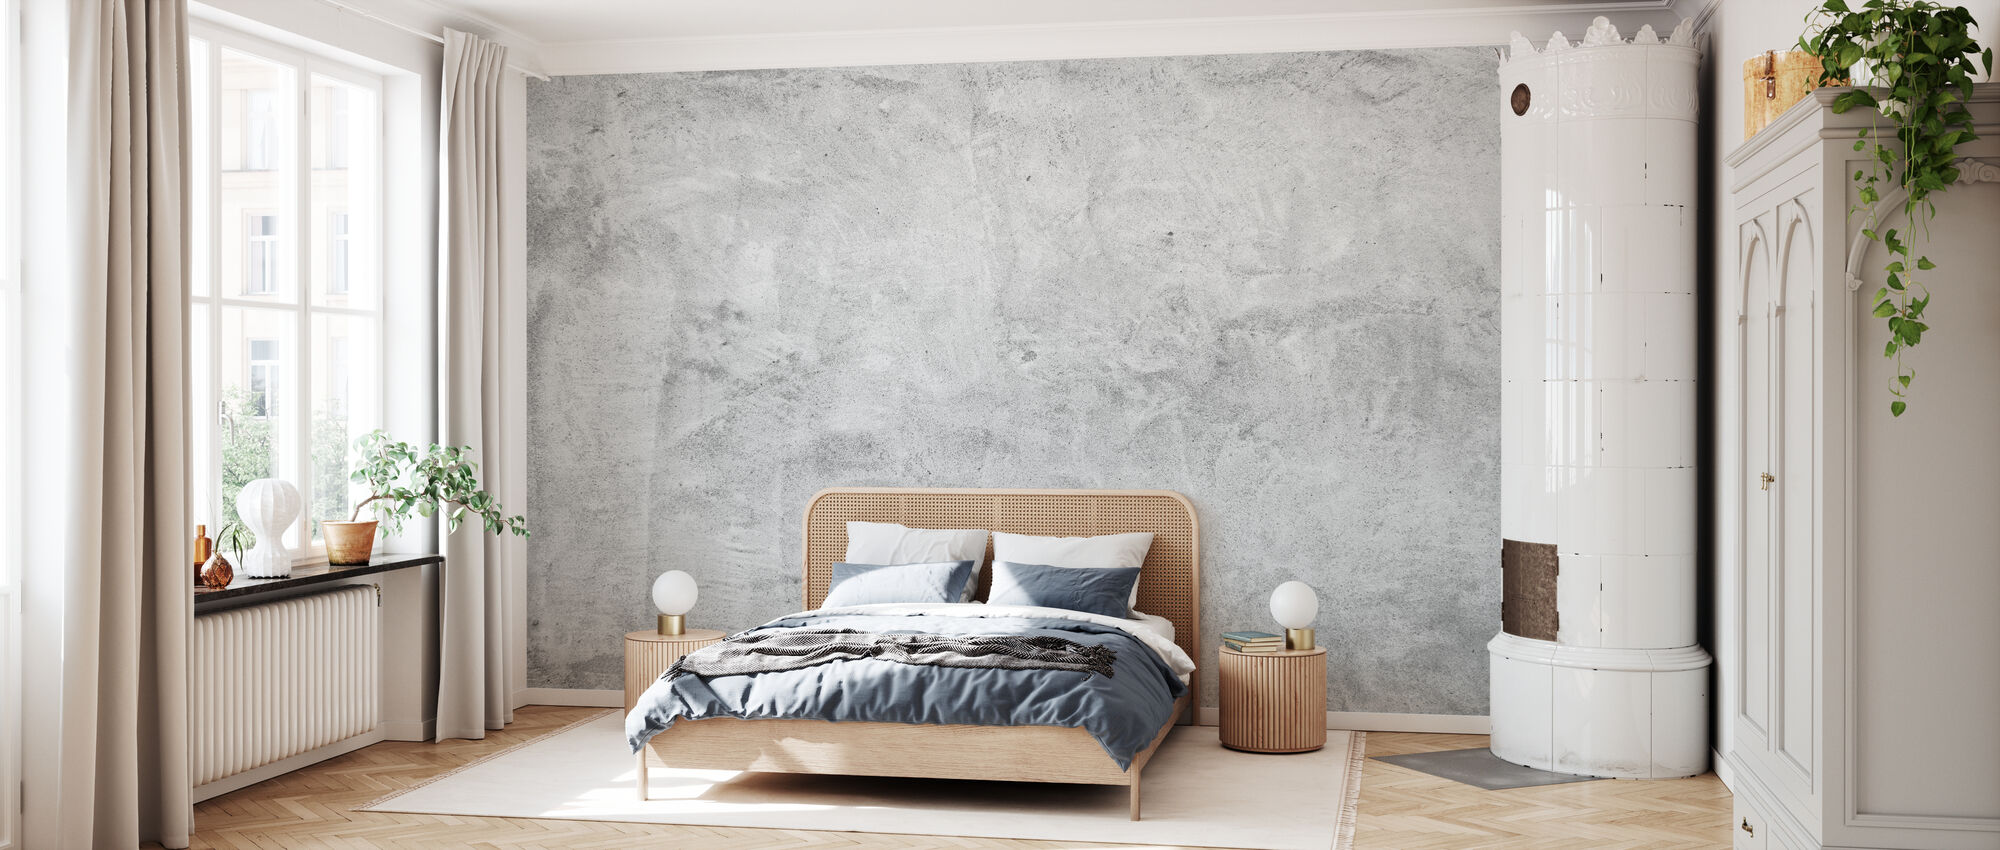 Scrubbed Concrete Wall - Wallpaper - Bedroom